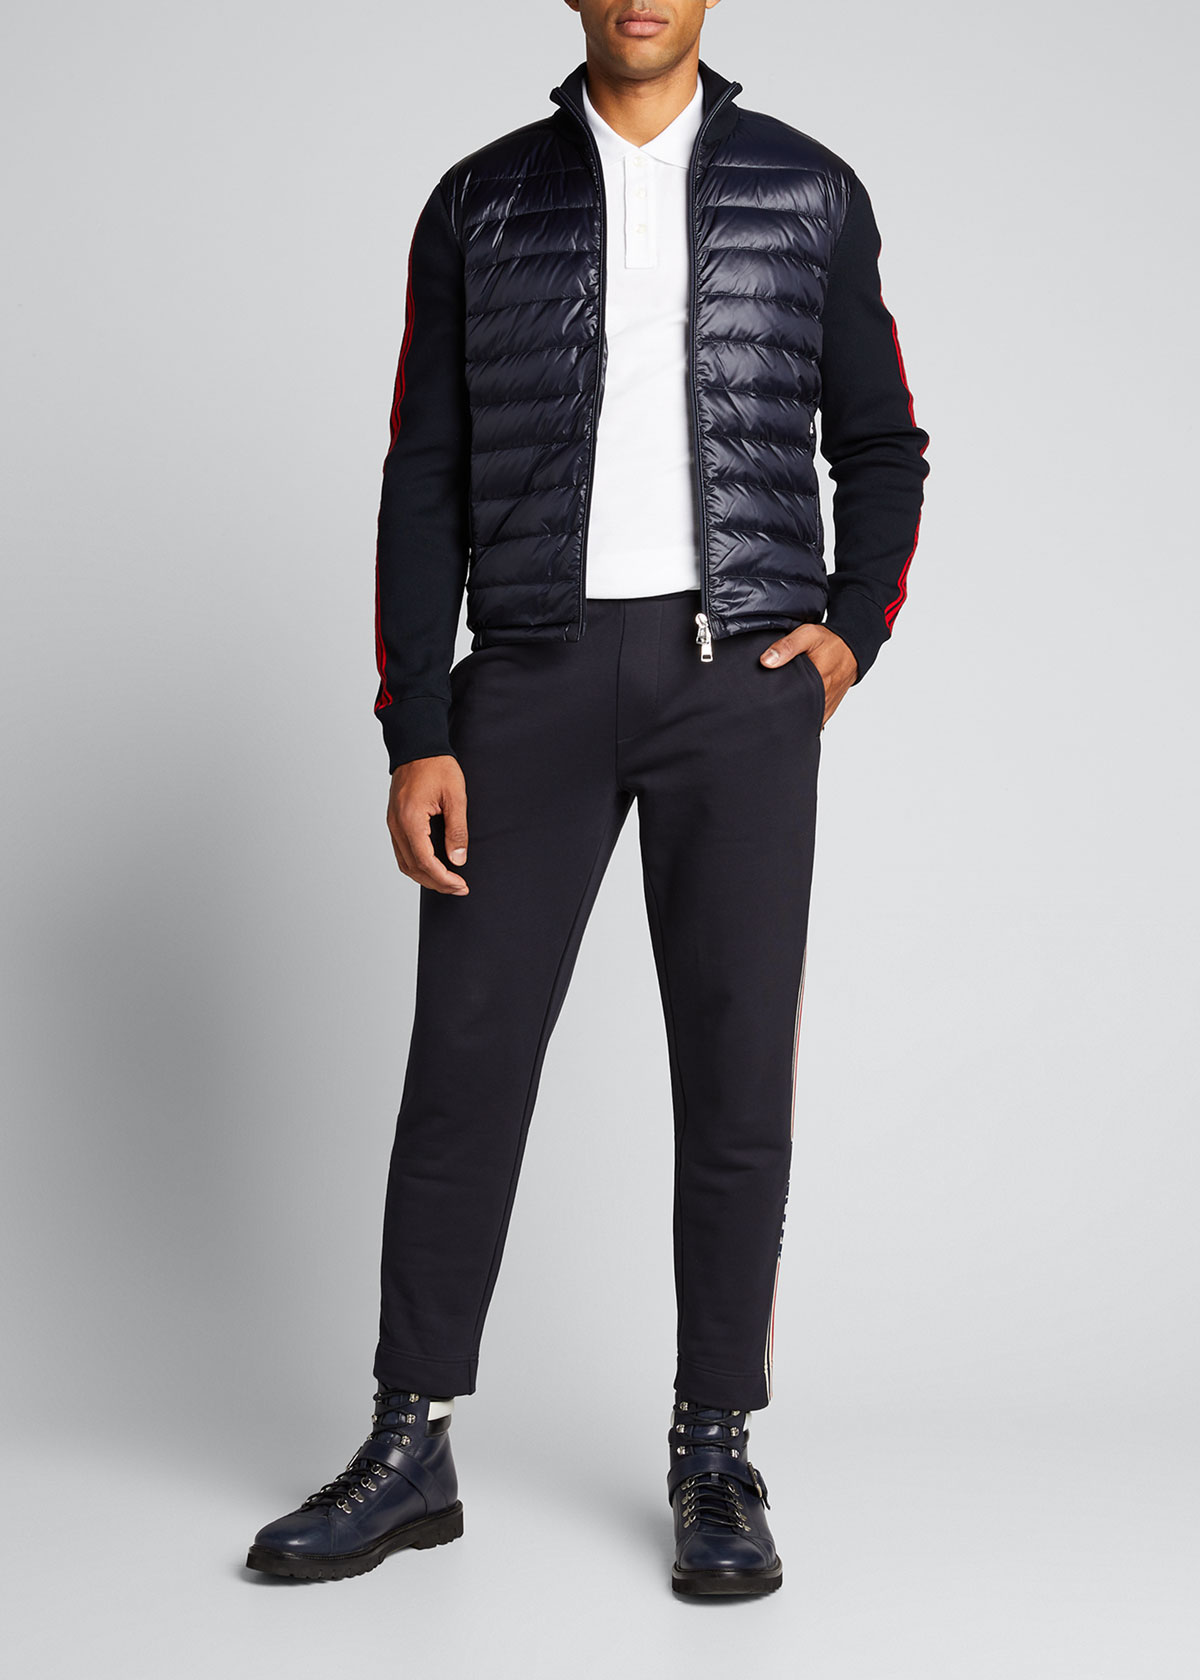 Moncler Jackets MEN'S QUILTED-FRONT ZIP-FRONT JACKET